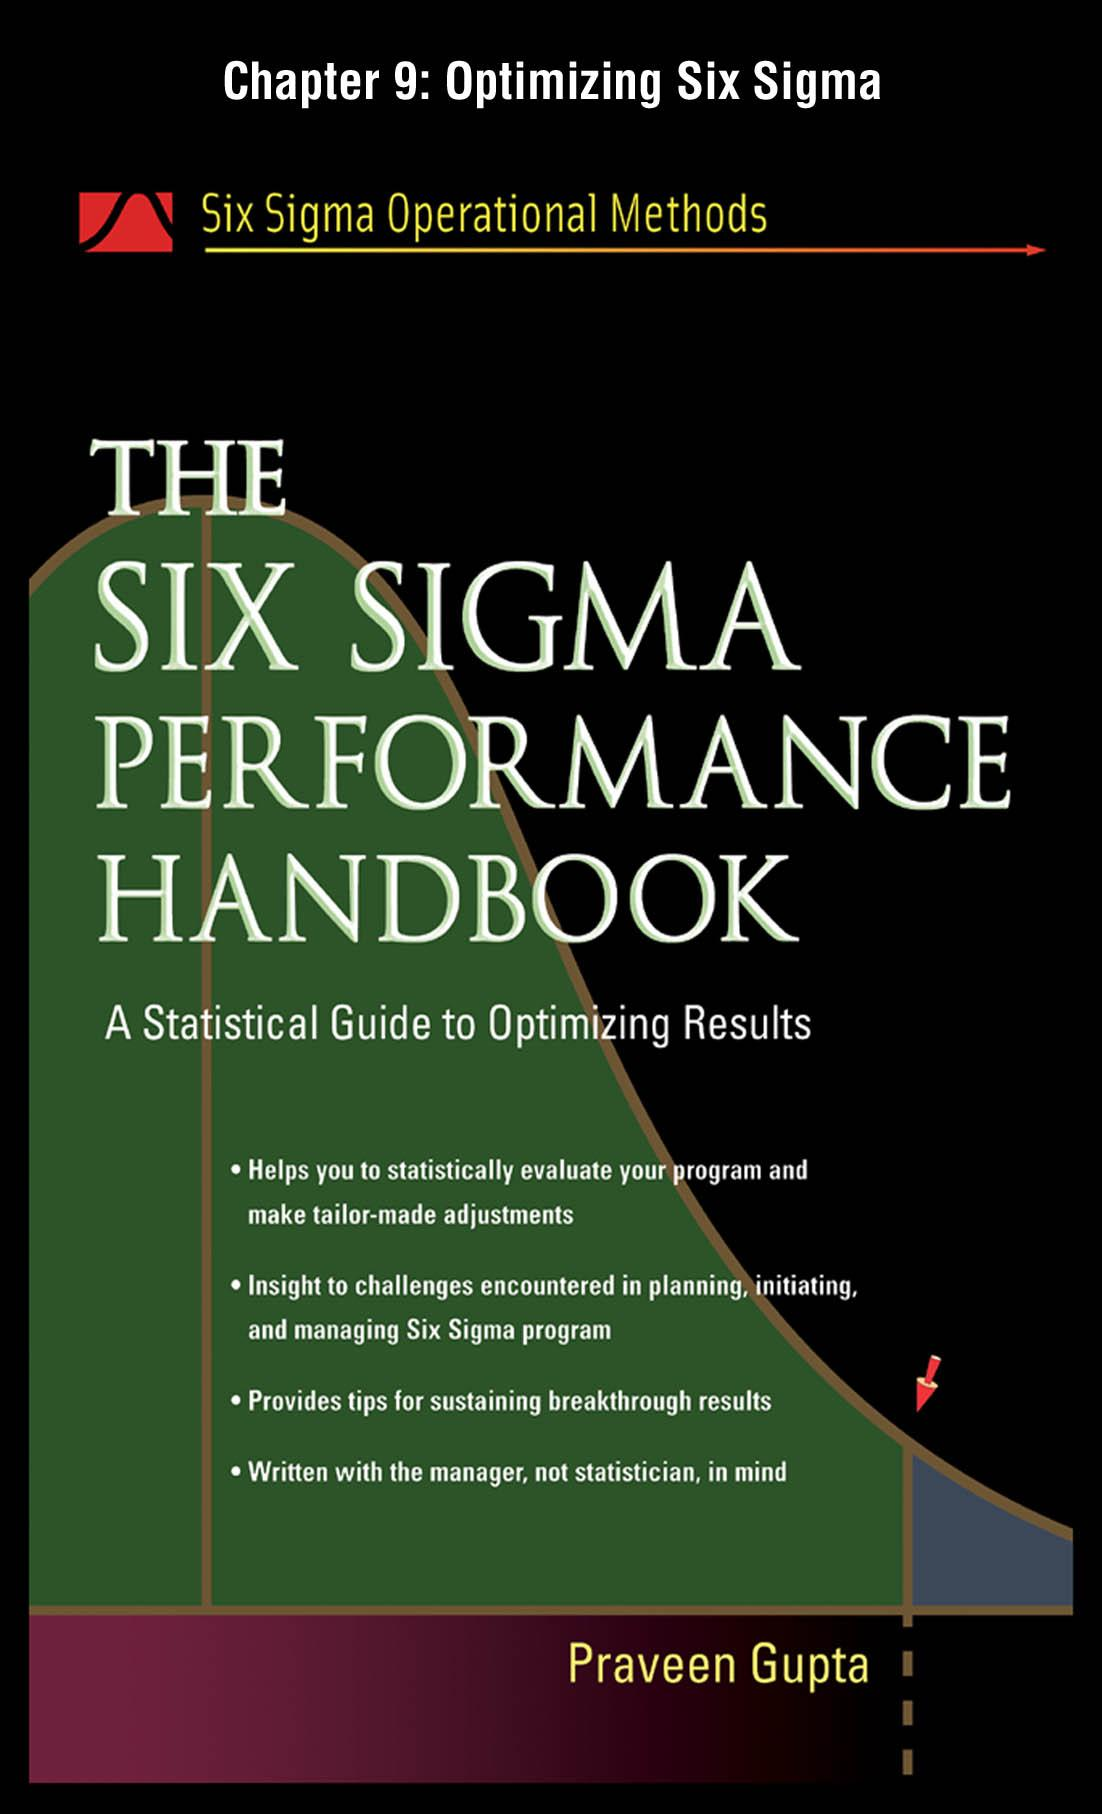 The Six Sigma Performance Handbook: Optimizing Six Sigma EB2370002600651